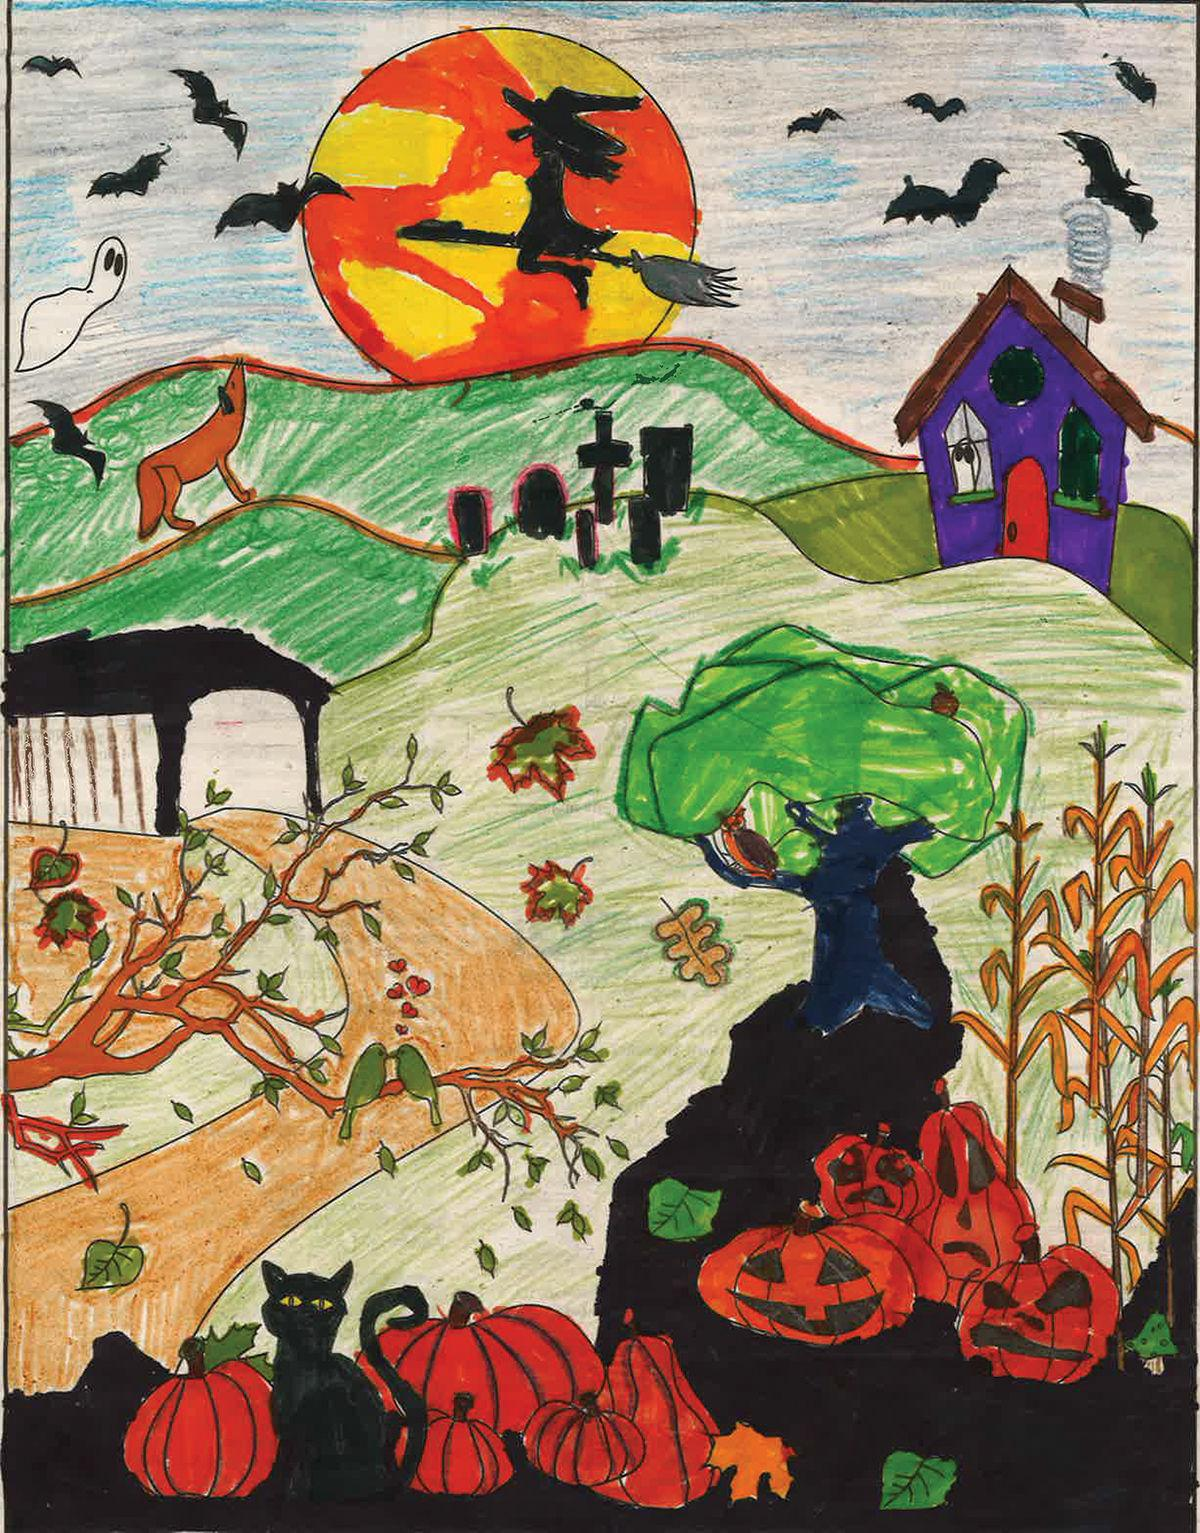 Age Group 5 and Under First Place Winner: Artwork by Maverick Cochran